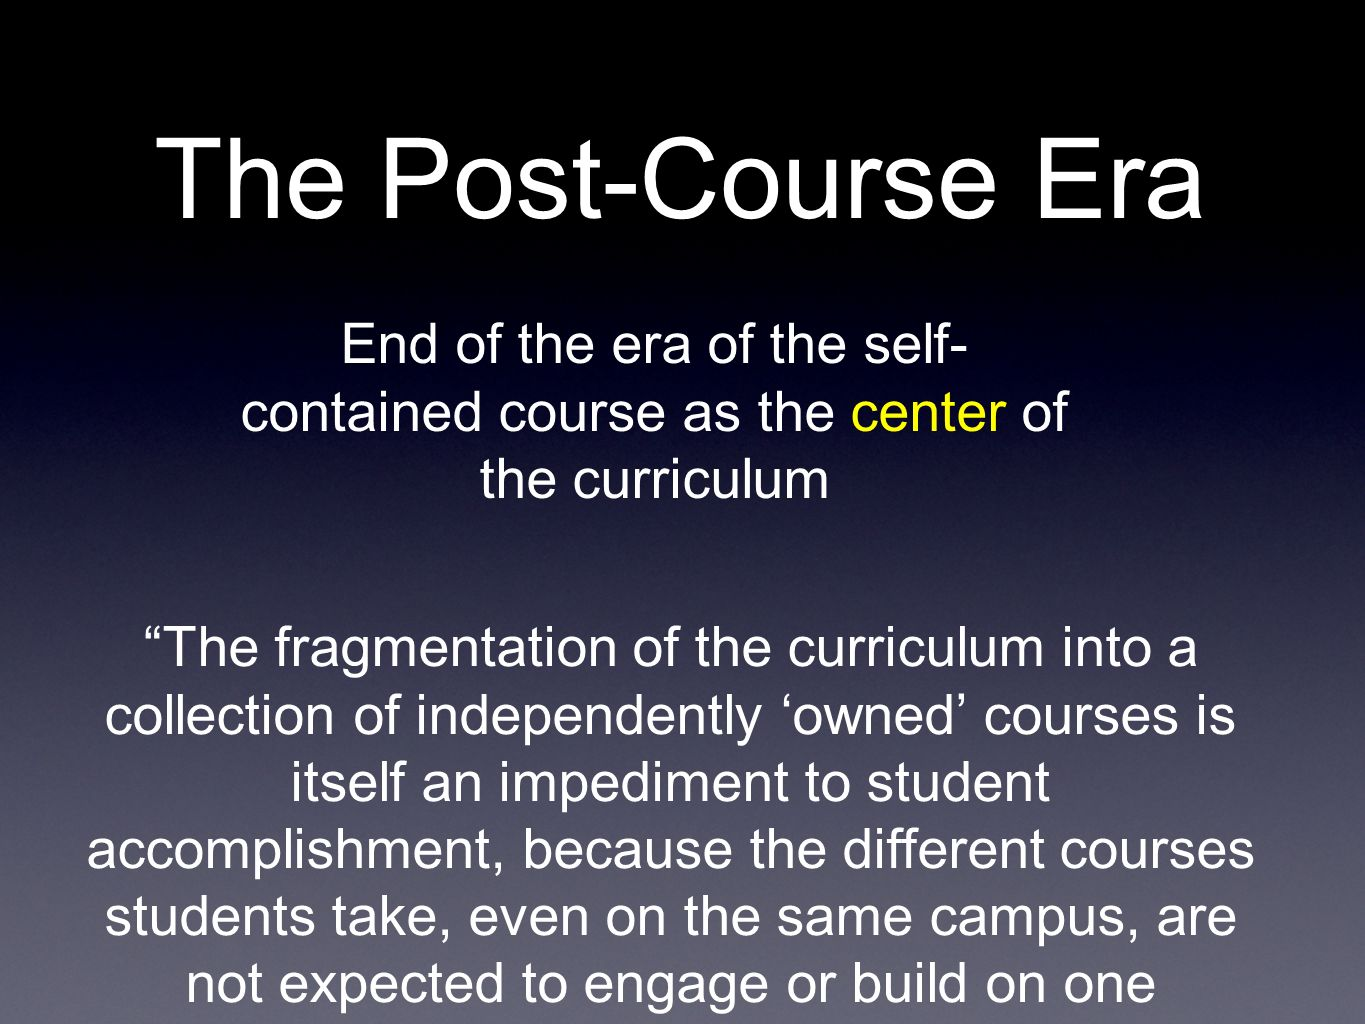 End of the era of the self- contained course as the center of the curriculum The fragmentation of the curriculum into a collection of independently owned courses is itself an impediment to student accomplishment, because the different courses students take, even on the same campus, are not expected to engage or build on one another.